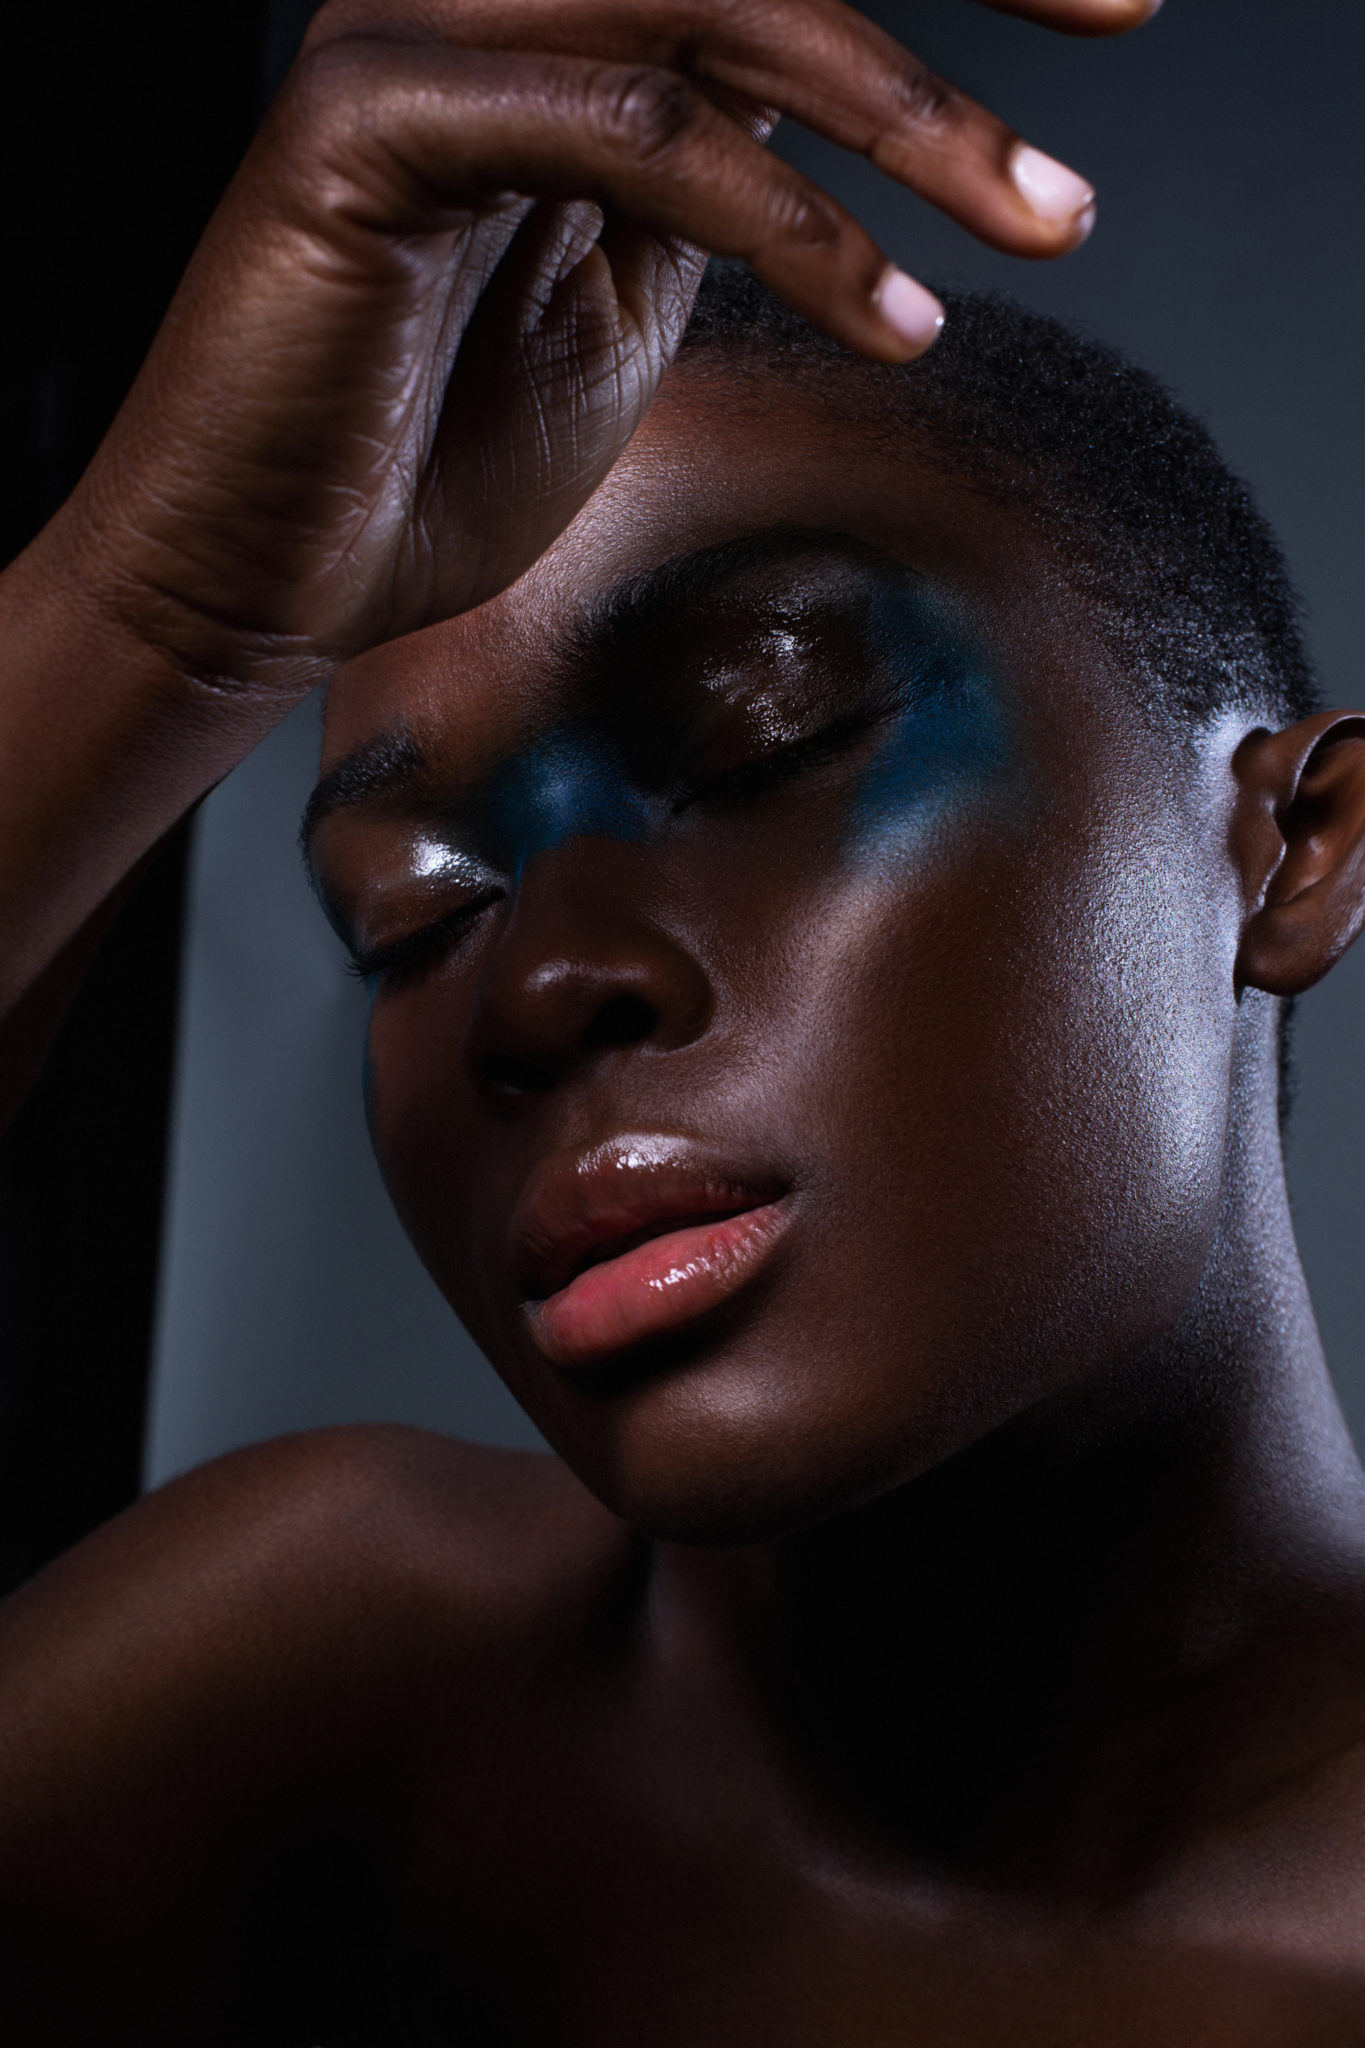 Color my face fashion story beauty editorial make up photography tina picard le dernier etage magazine webzine